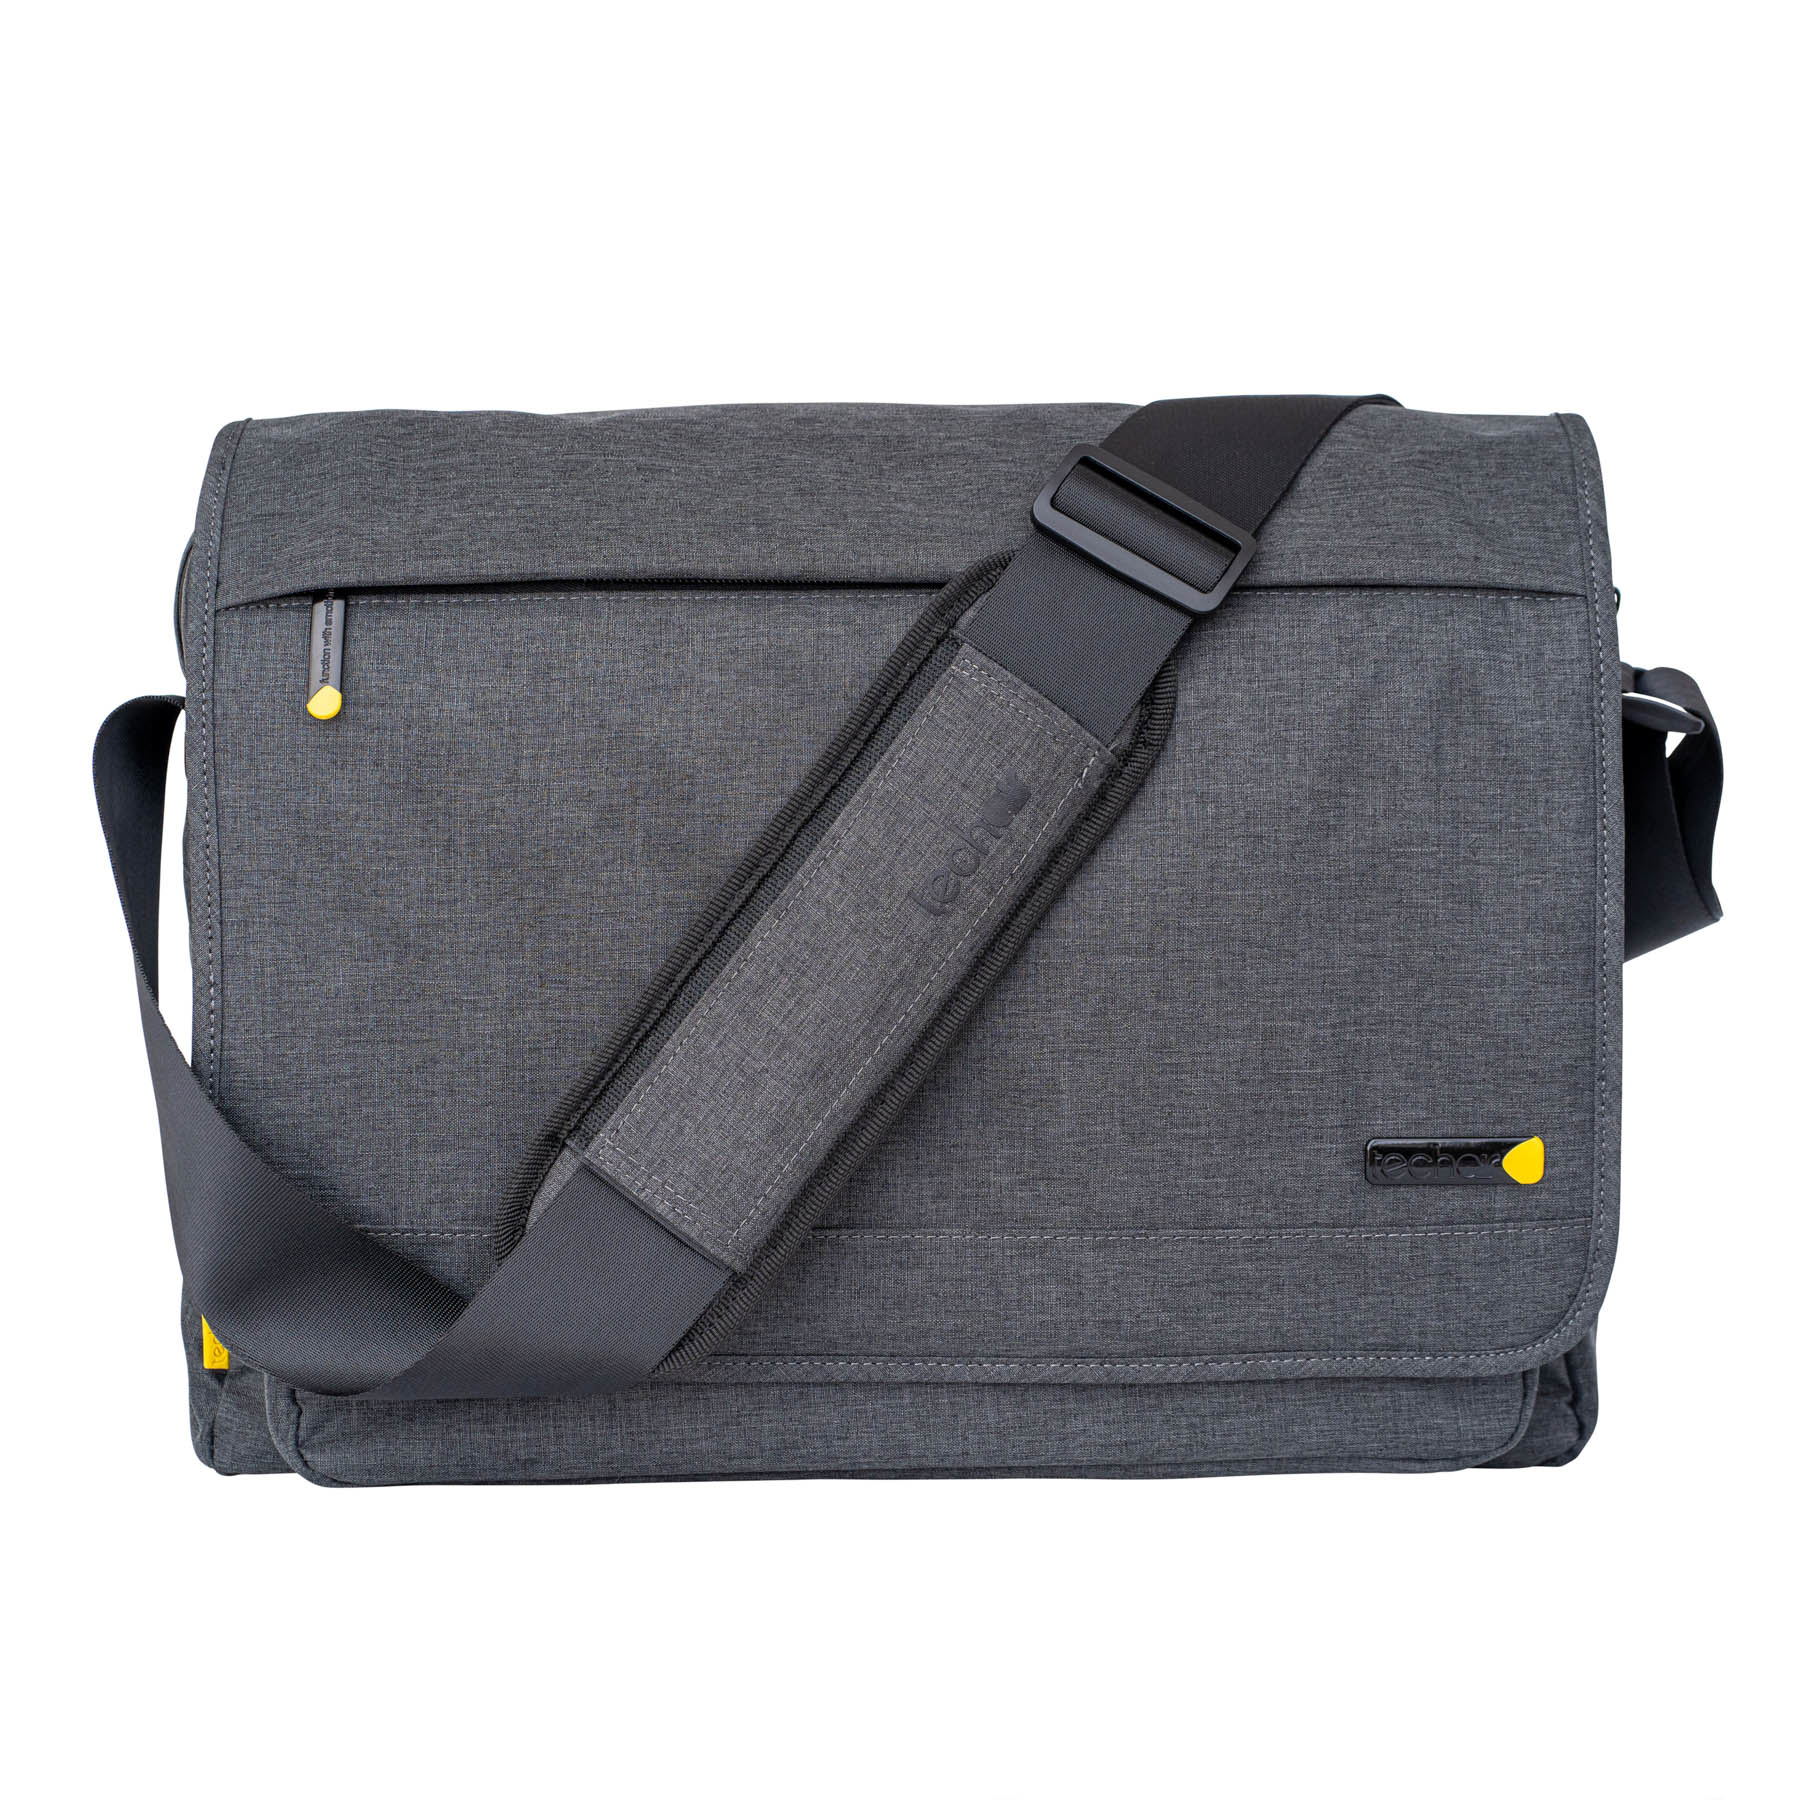 "Tech air Evo Pro notebook case 39.6 cm (15.6"") Messenger case Gray TAEVMM010"